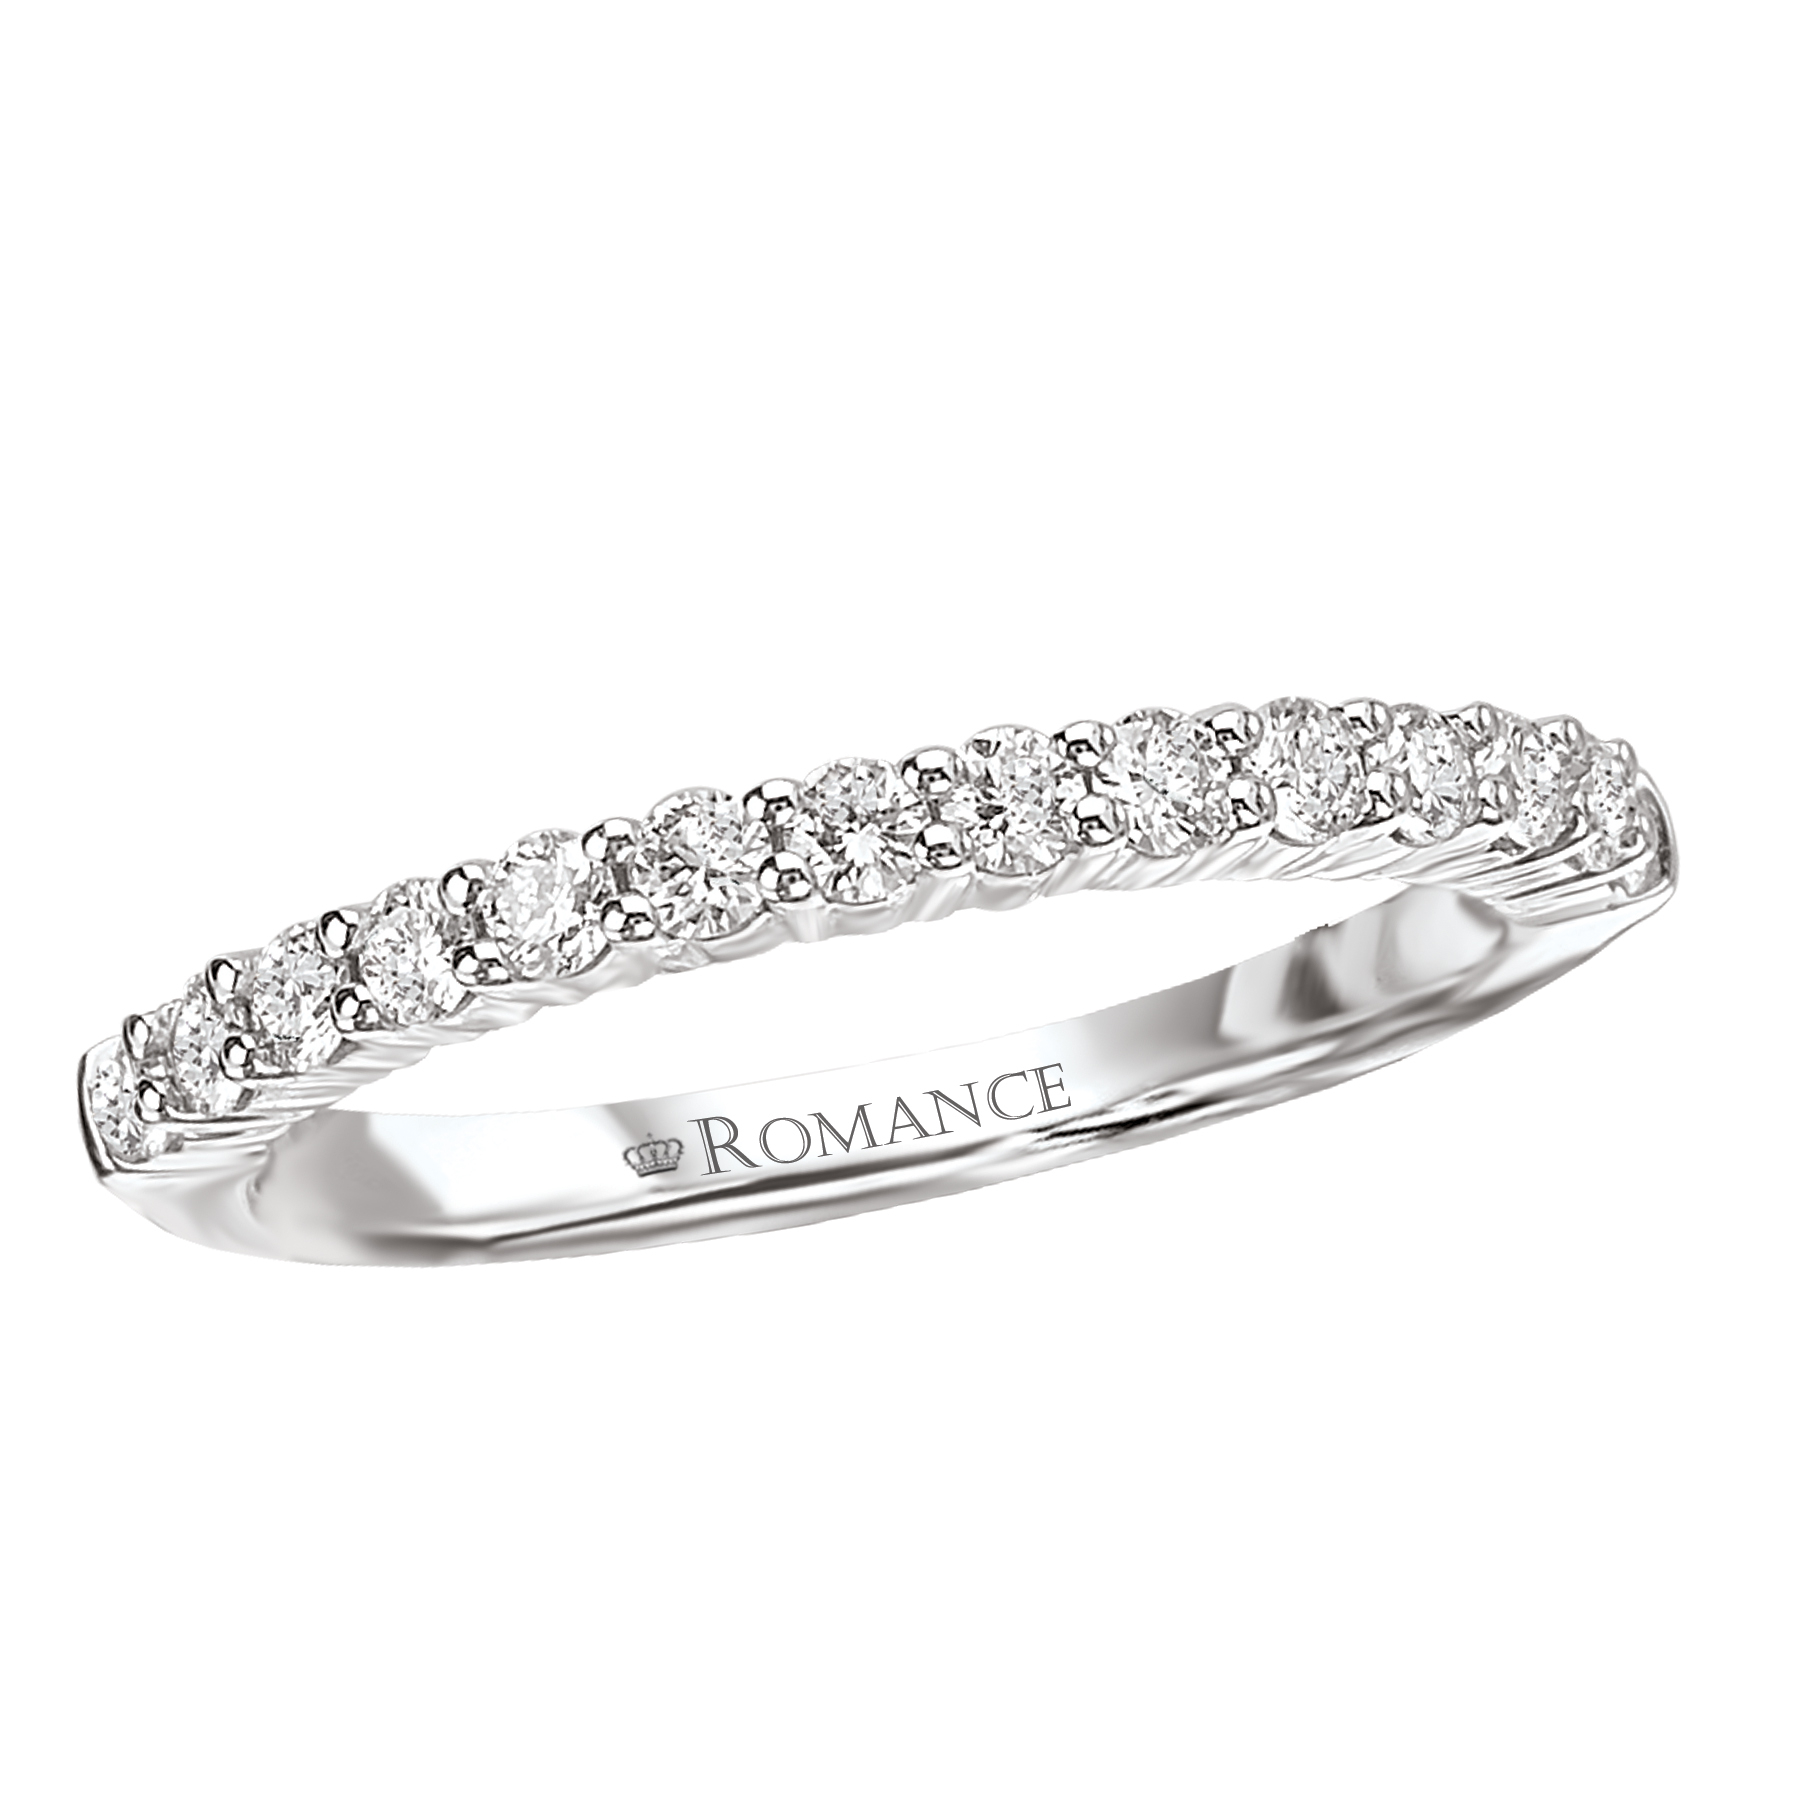 Romance Wedding Bands 118003-W product image